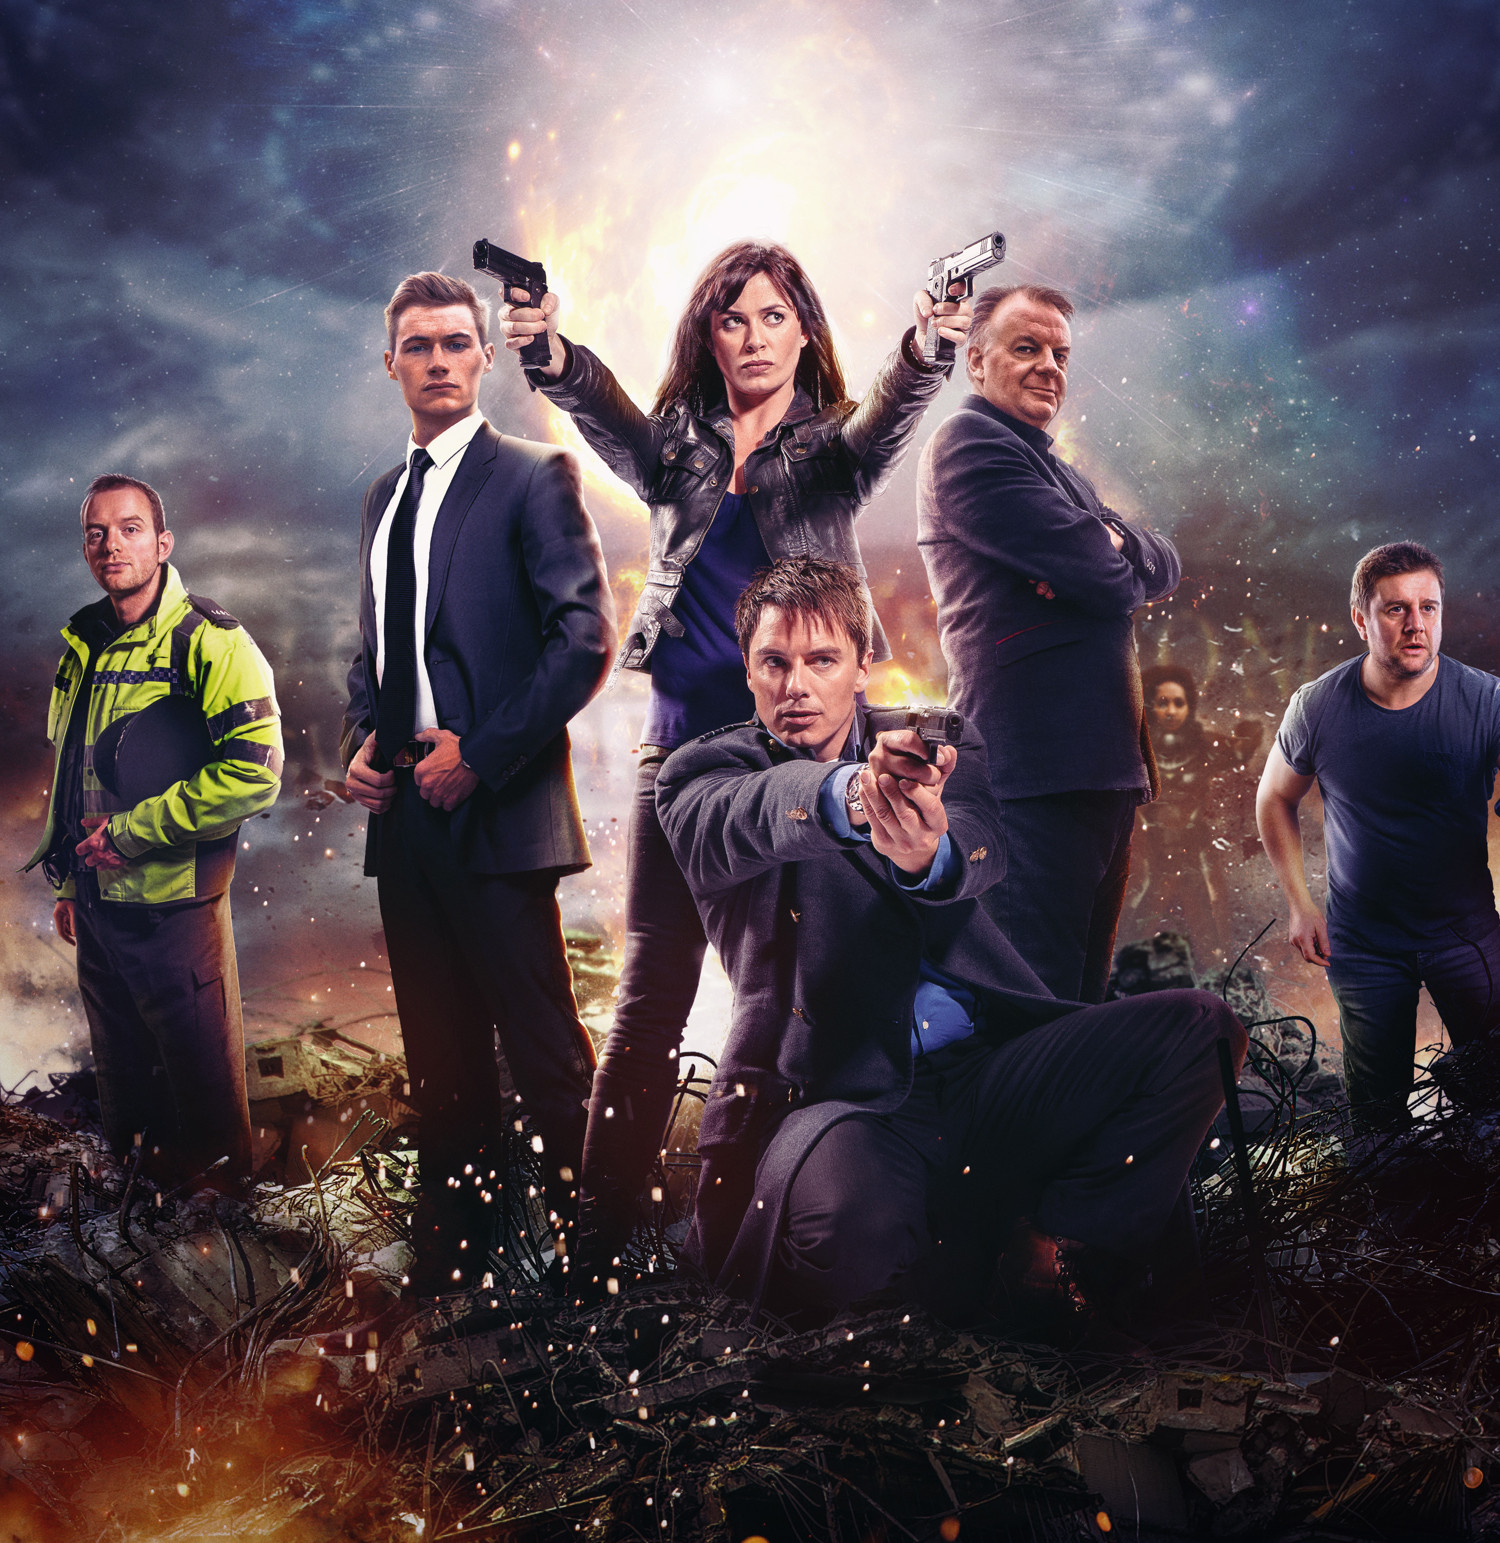 Torchwood Series 5 (Credit: Big Finish)